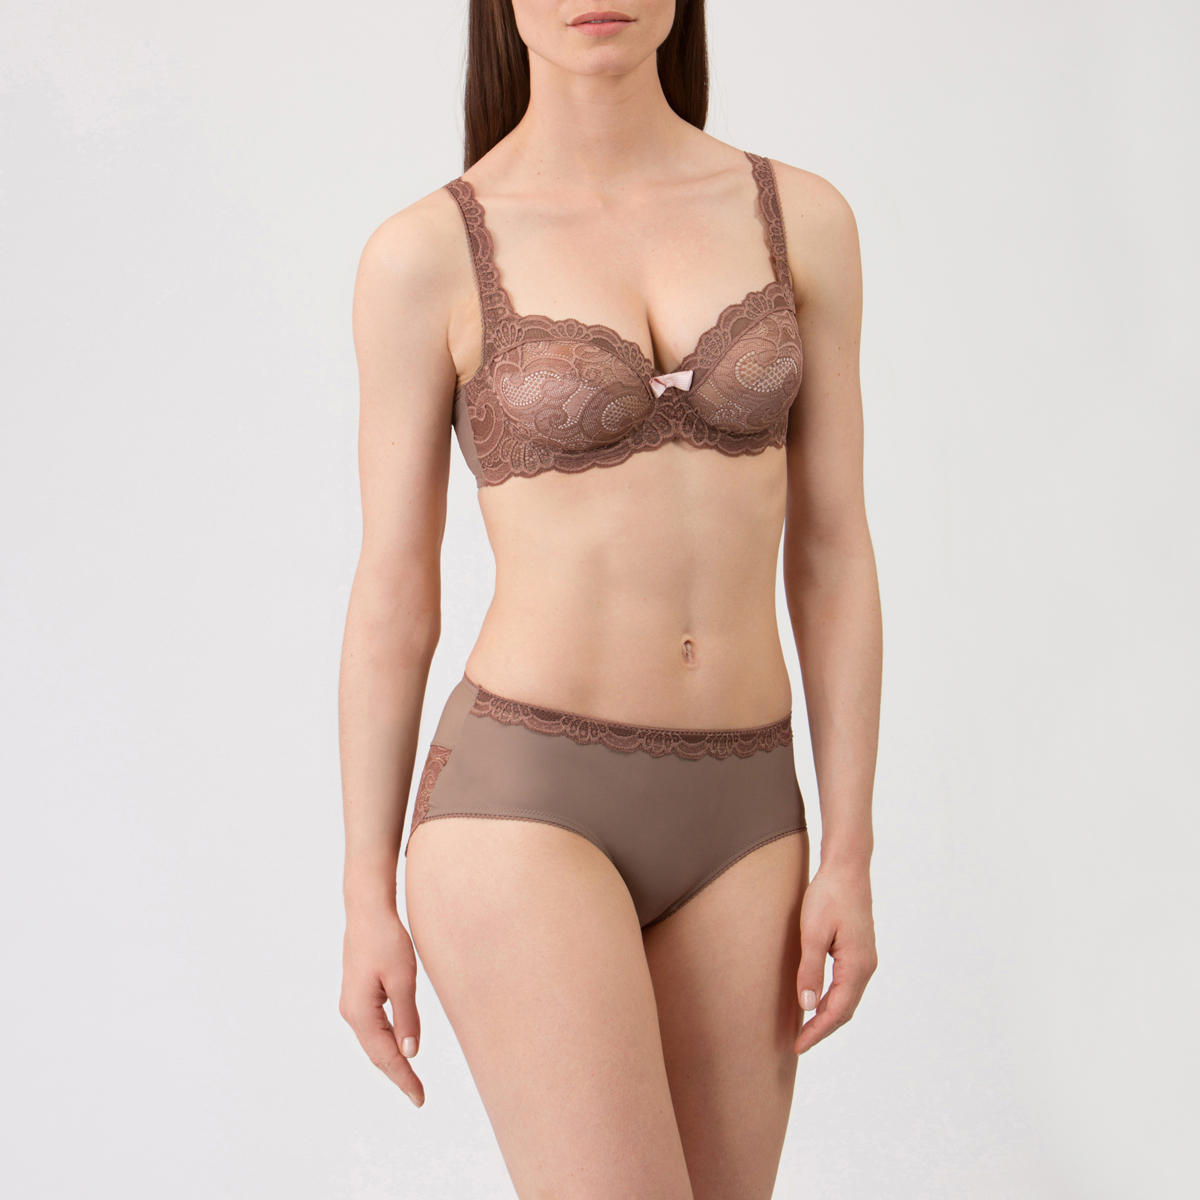 Balcony Bra in Warm grey - Invisible Elegance-PLAYTEX